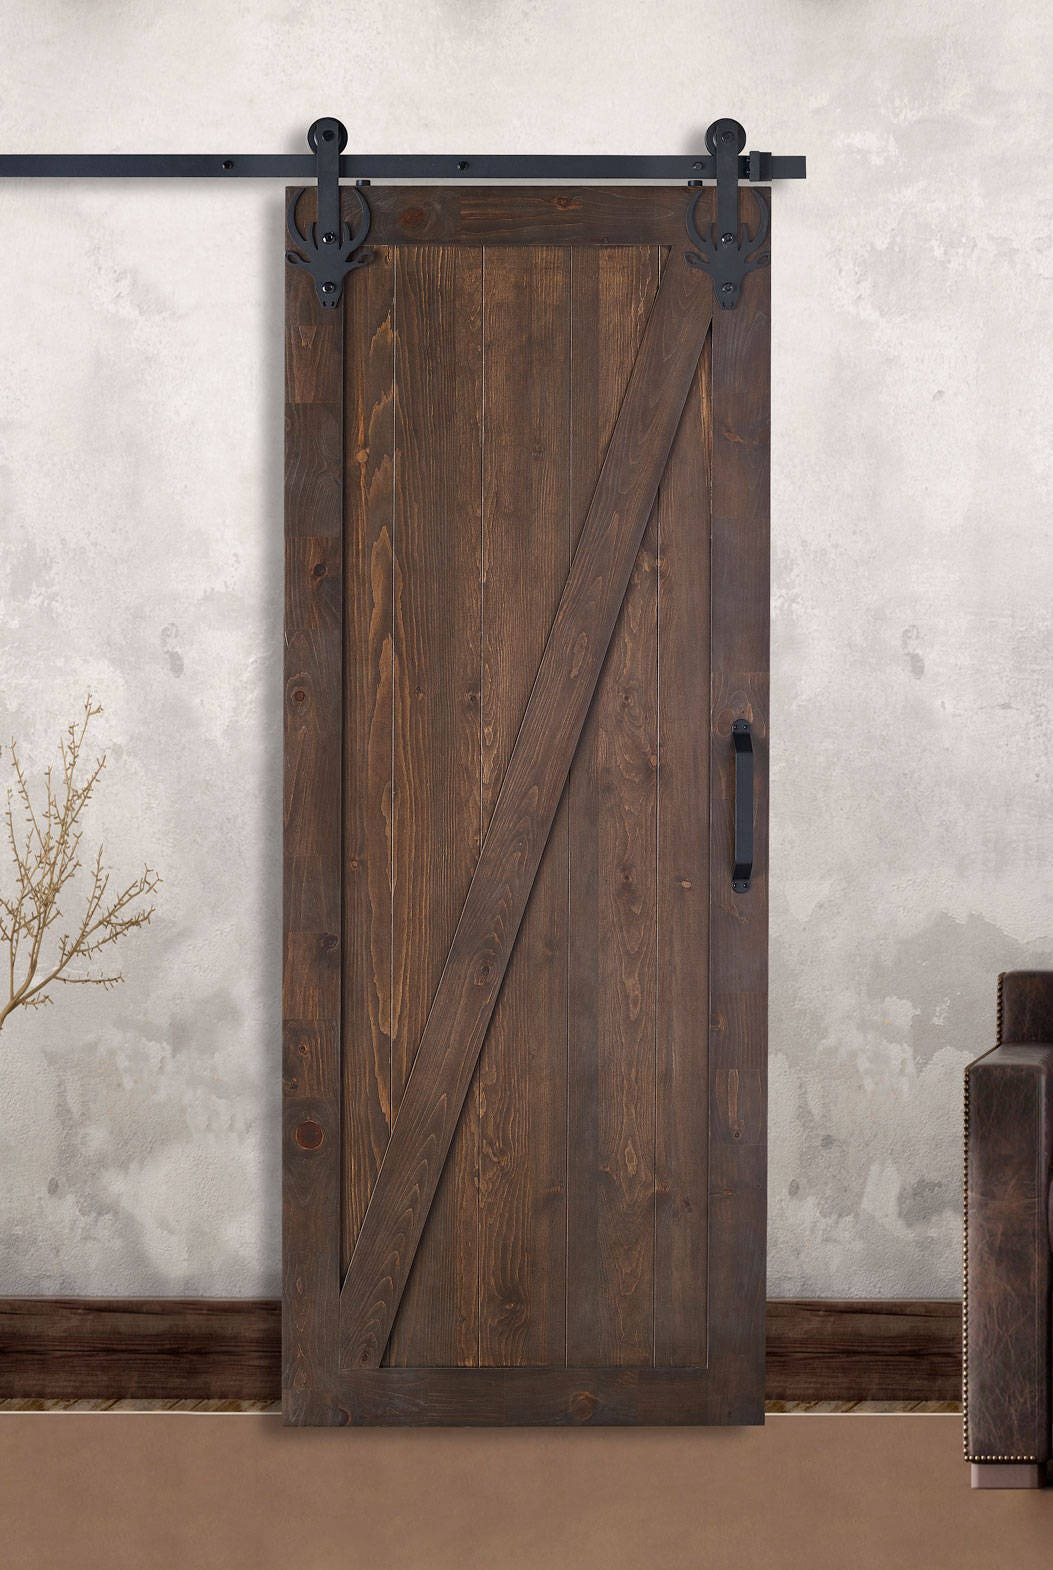 Farm style sliding barn doors z style stained painted for Farm sliding door